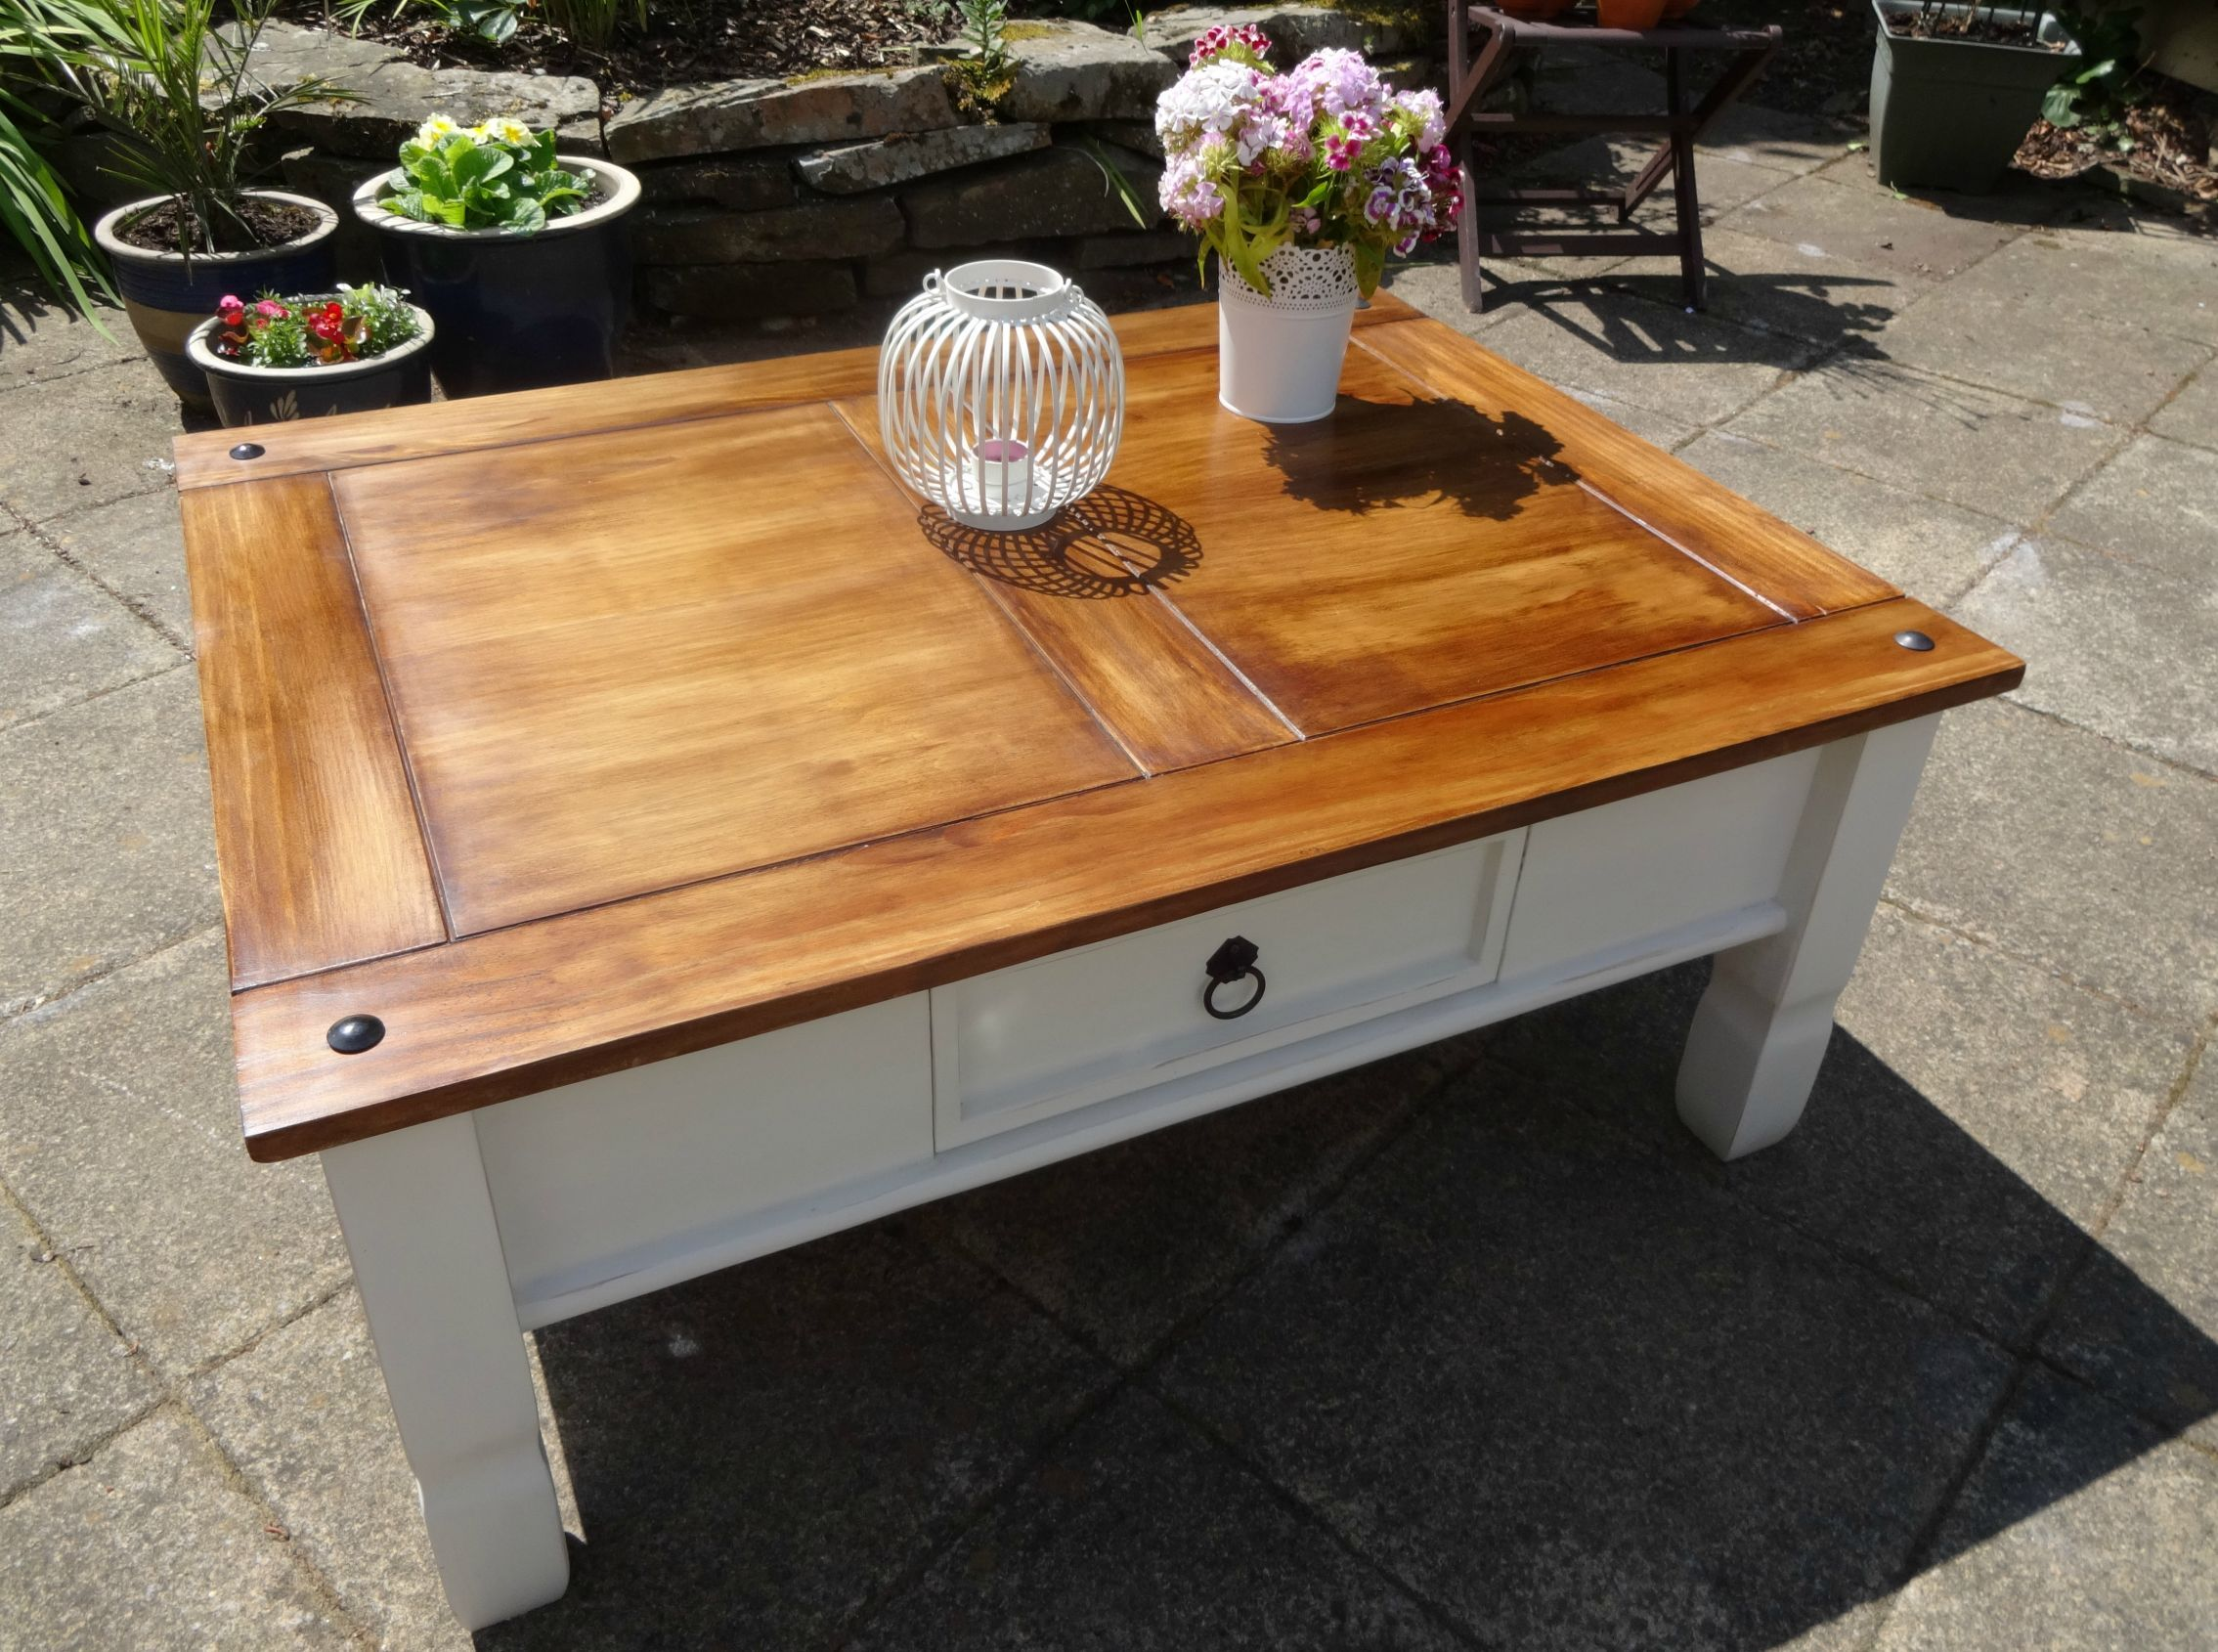 Upcycled Mexican Pine Coffee Table Annie Sloan Old White And Dark Wax